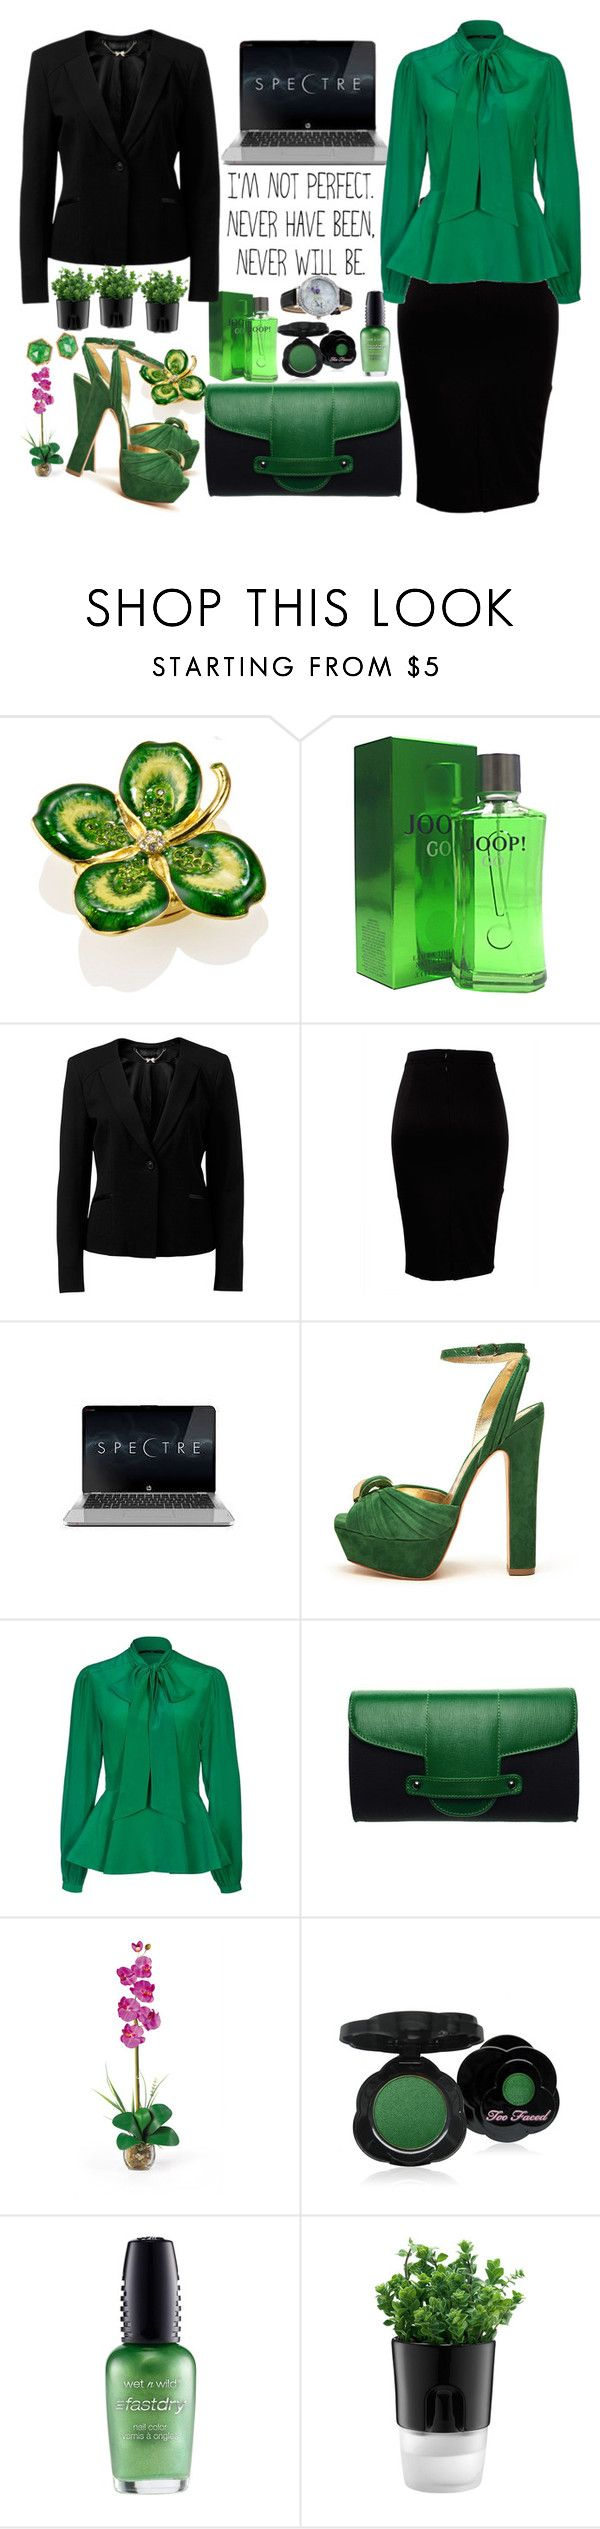 """business woman"" by tijanna ❤ liked on Polyvore featuring Estée Lauder, Joop, Forever New, St. Eve, Mimco, SLY 010, Torula Bags, Nearly Natural, Too Faced Cosmetics and Wet n Wild"